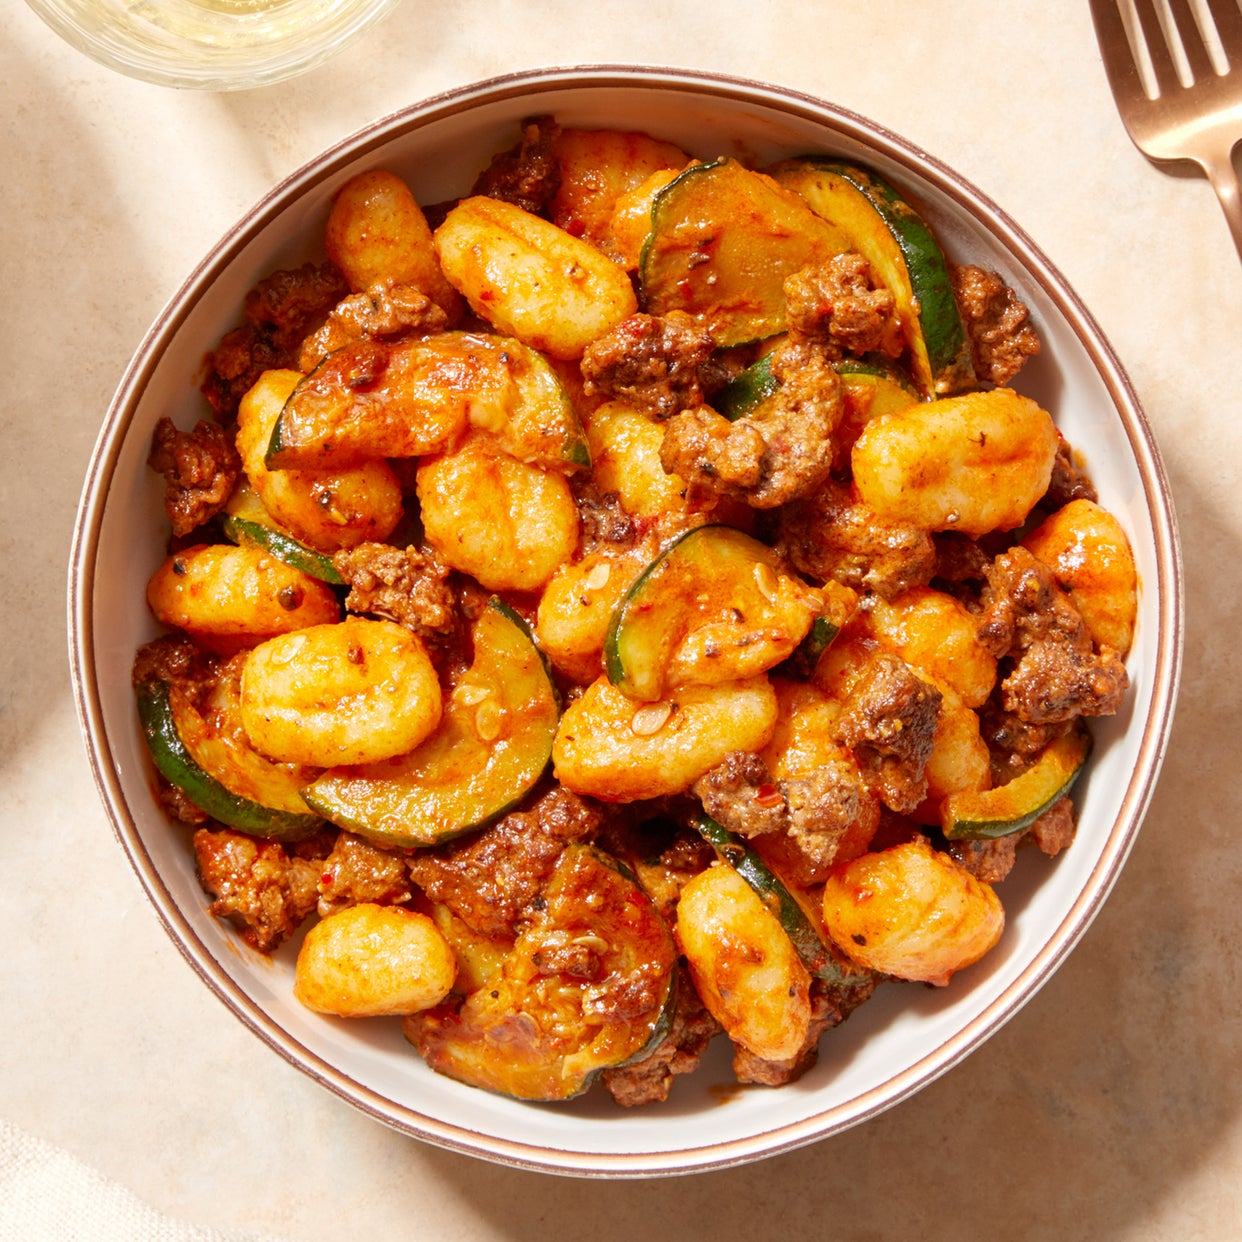 Spicy Beef & Gnocchi with Zucchini